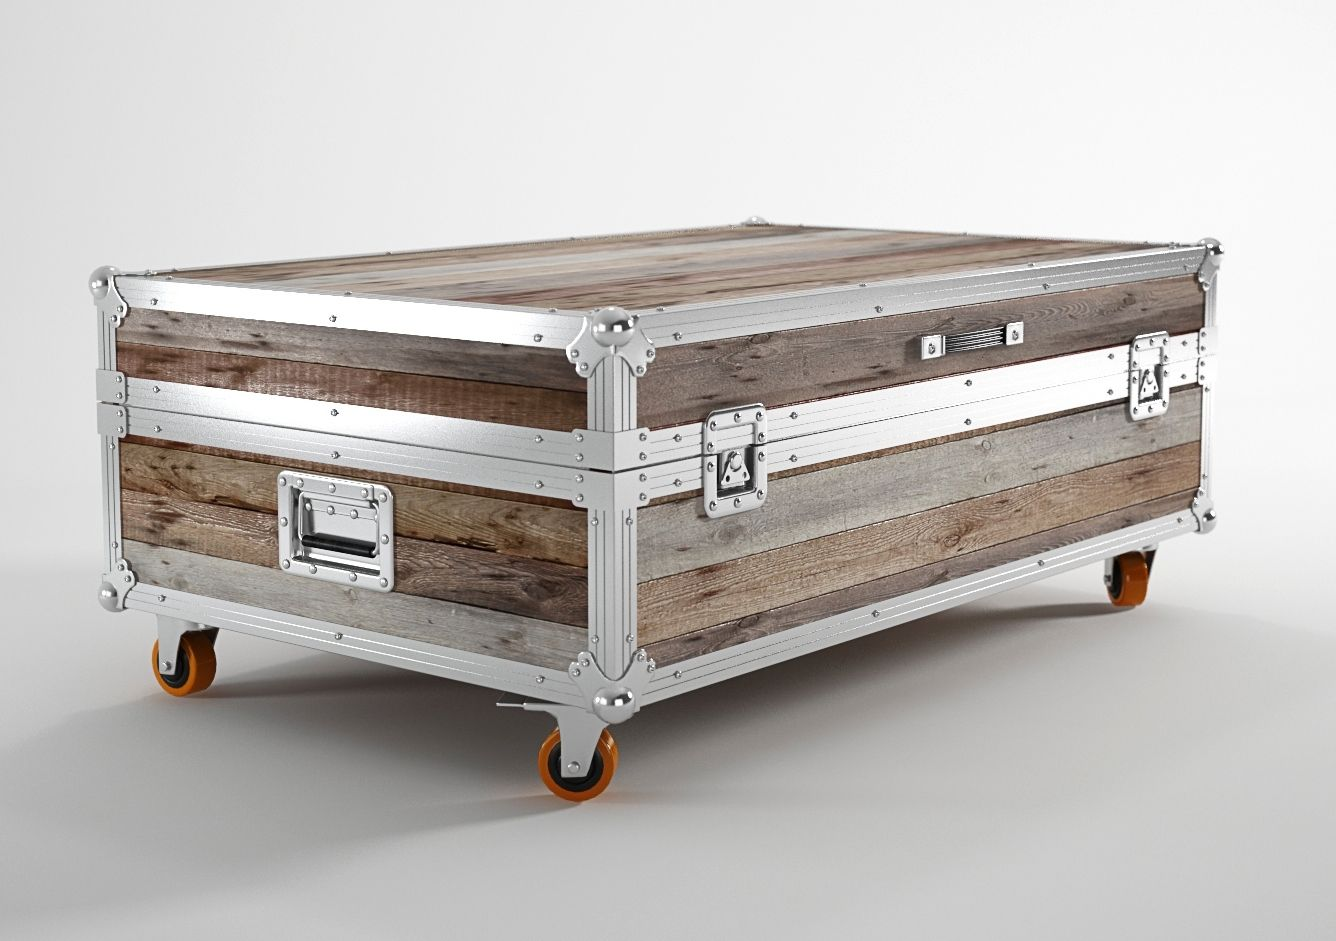 Stainless Steel Trunks As Coffee Tables